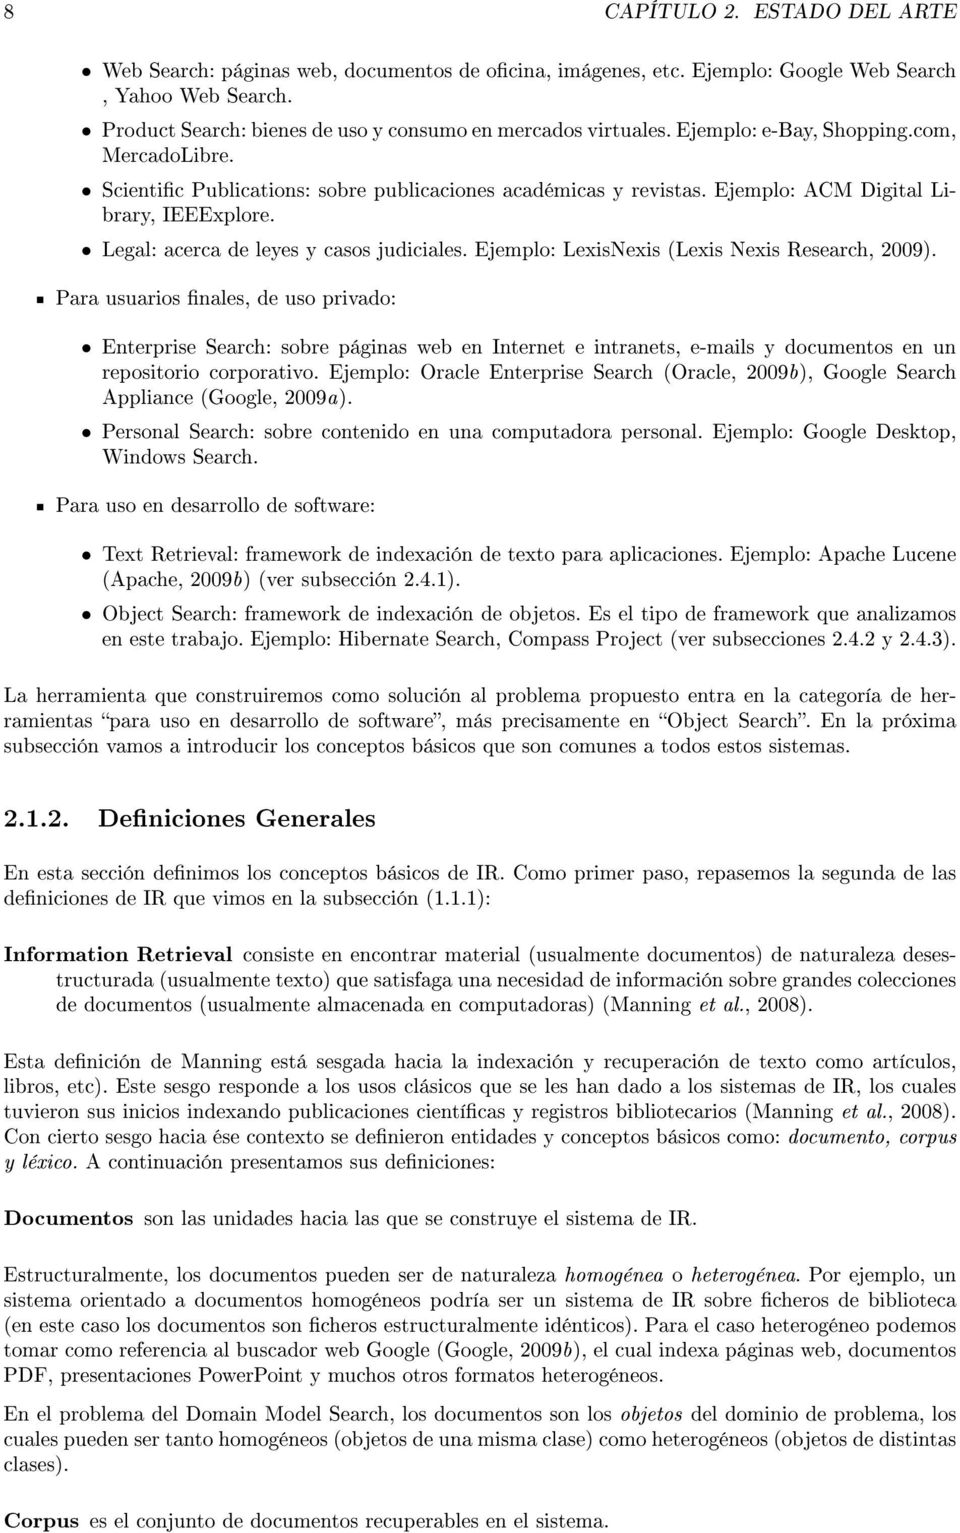 Ejemplo: LexisNexis (Lexis Nexis Research, 2009). Para usuarios nales, de uso privado: Enterprise Search: sobre páginas web en Internet e intranets, e-mails y documentos en un repositorio corporativo.